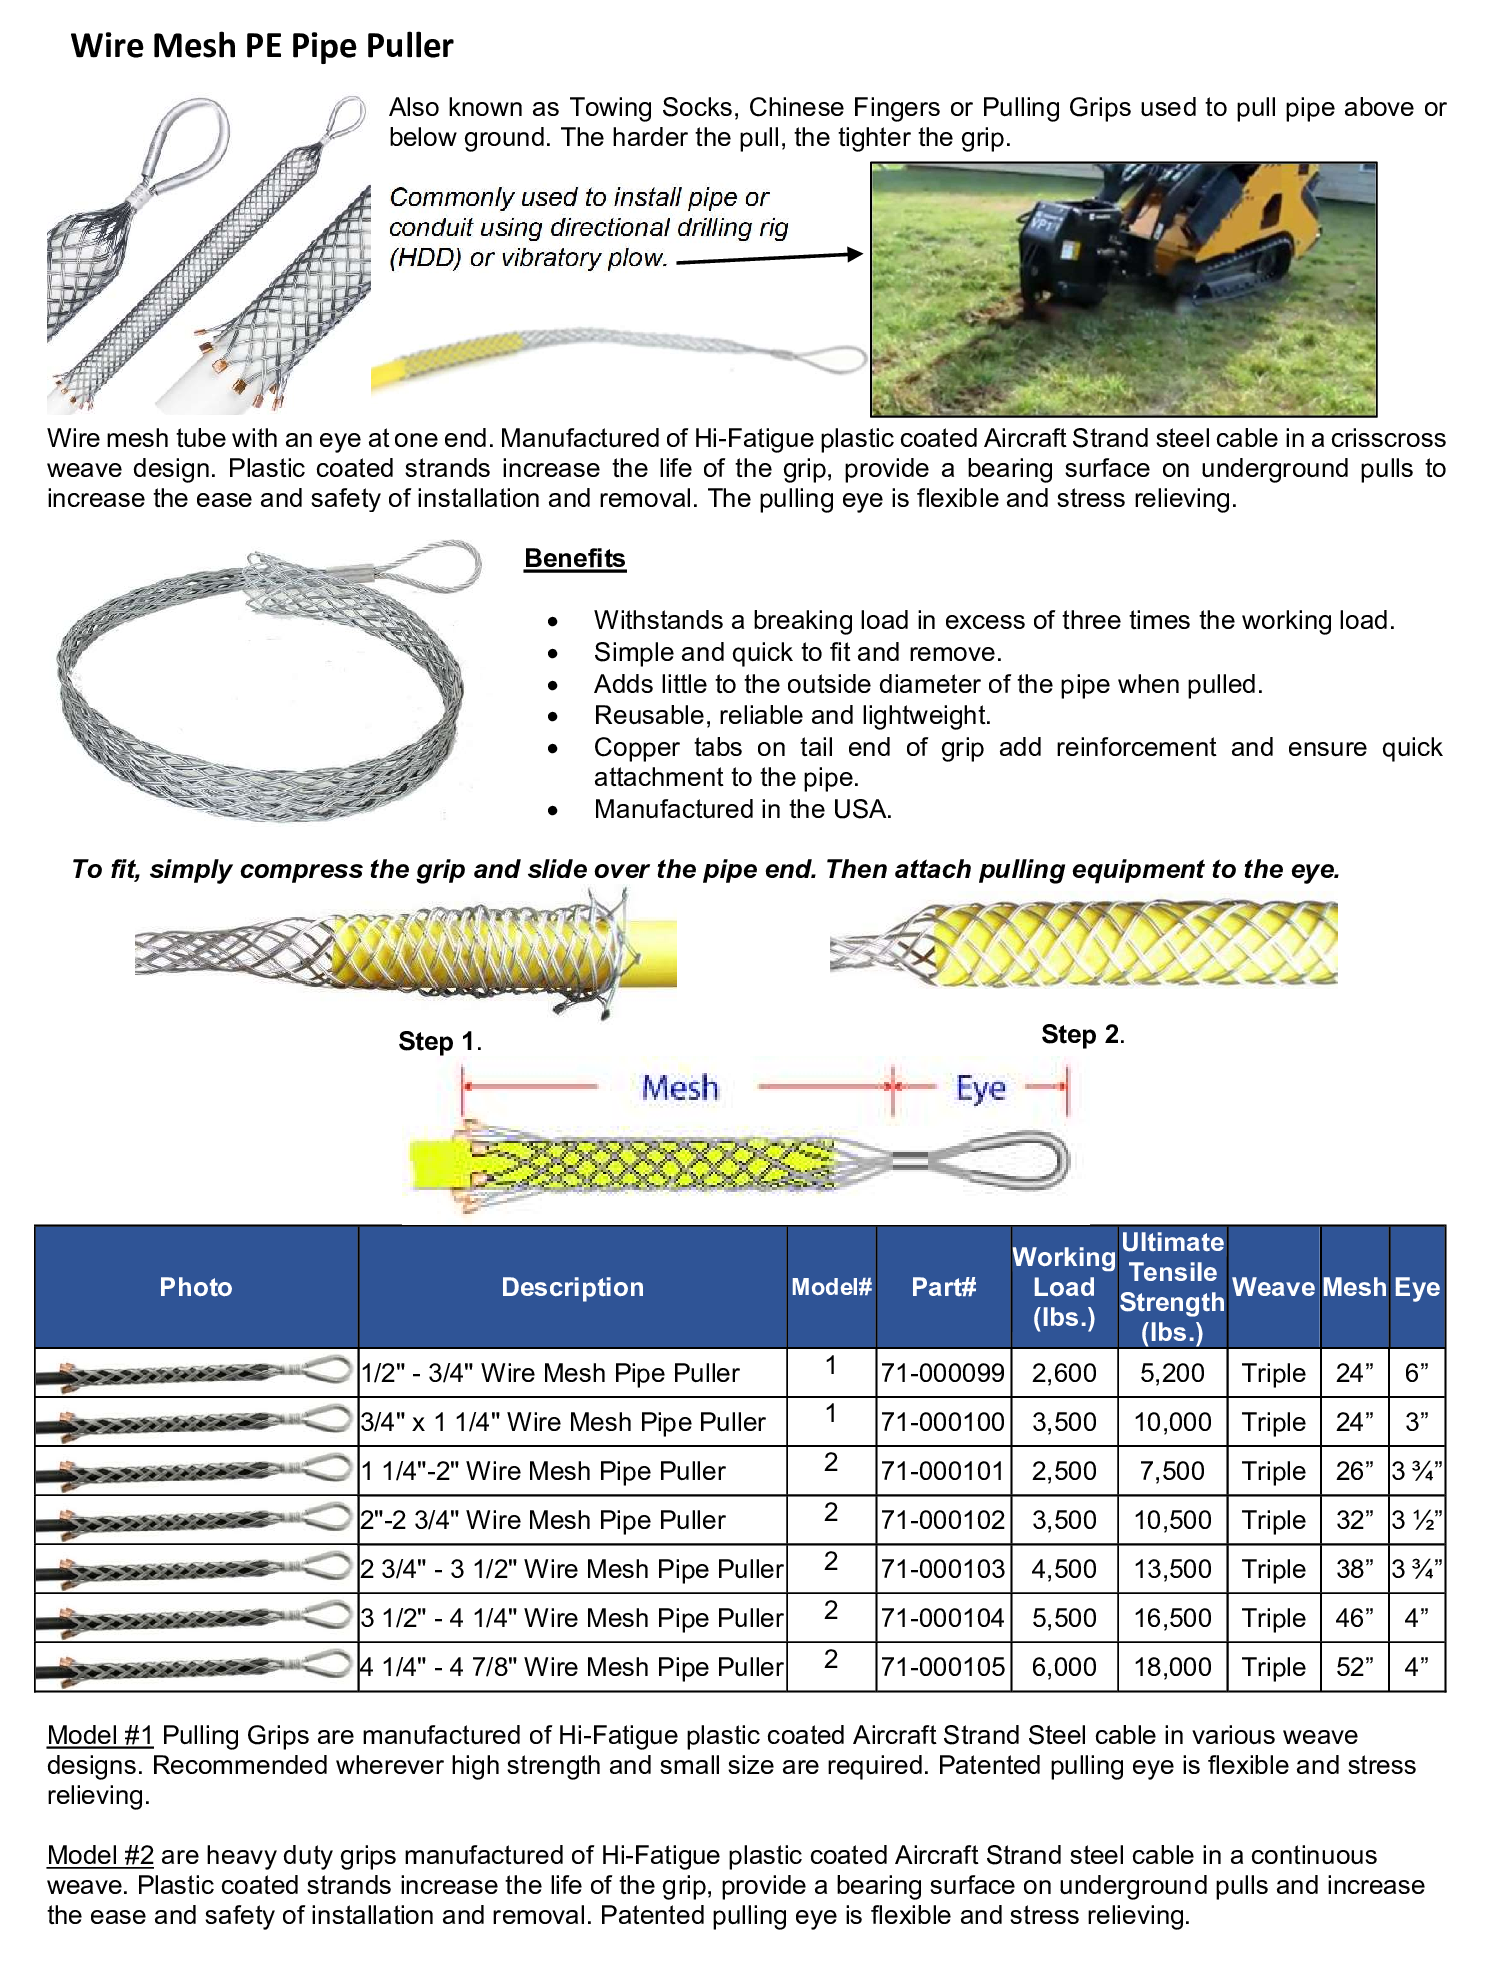 01-wire-mesh-pe-pipe-puller-nf-1-.png